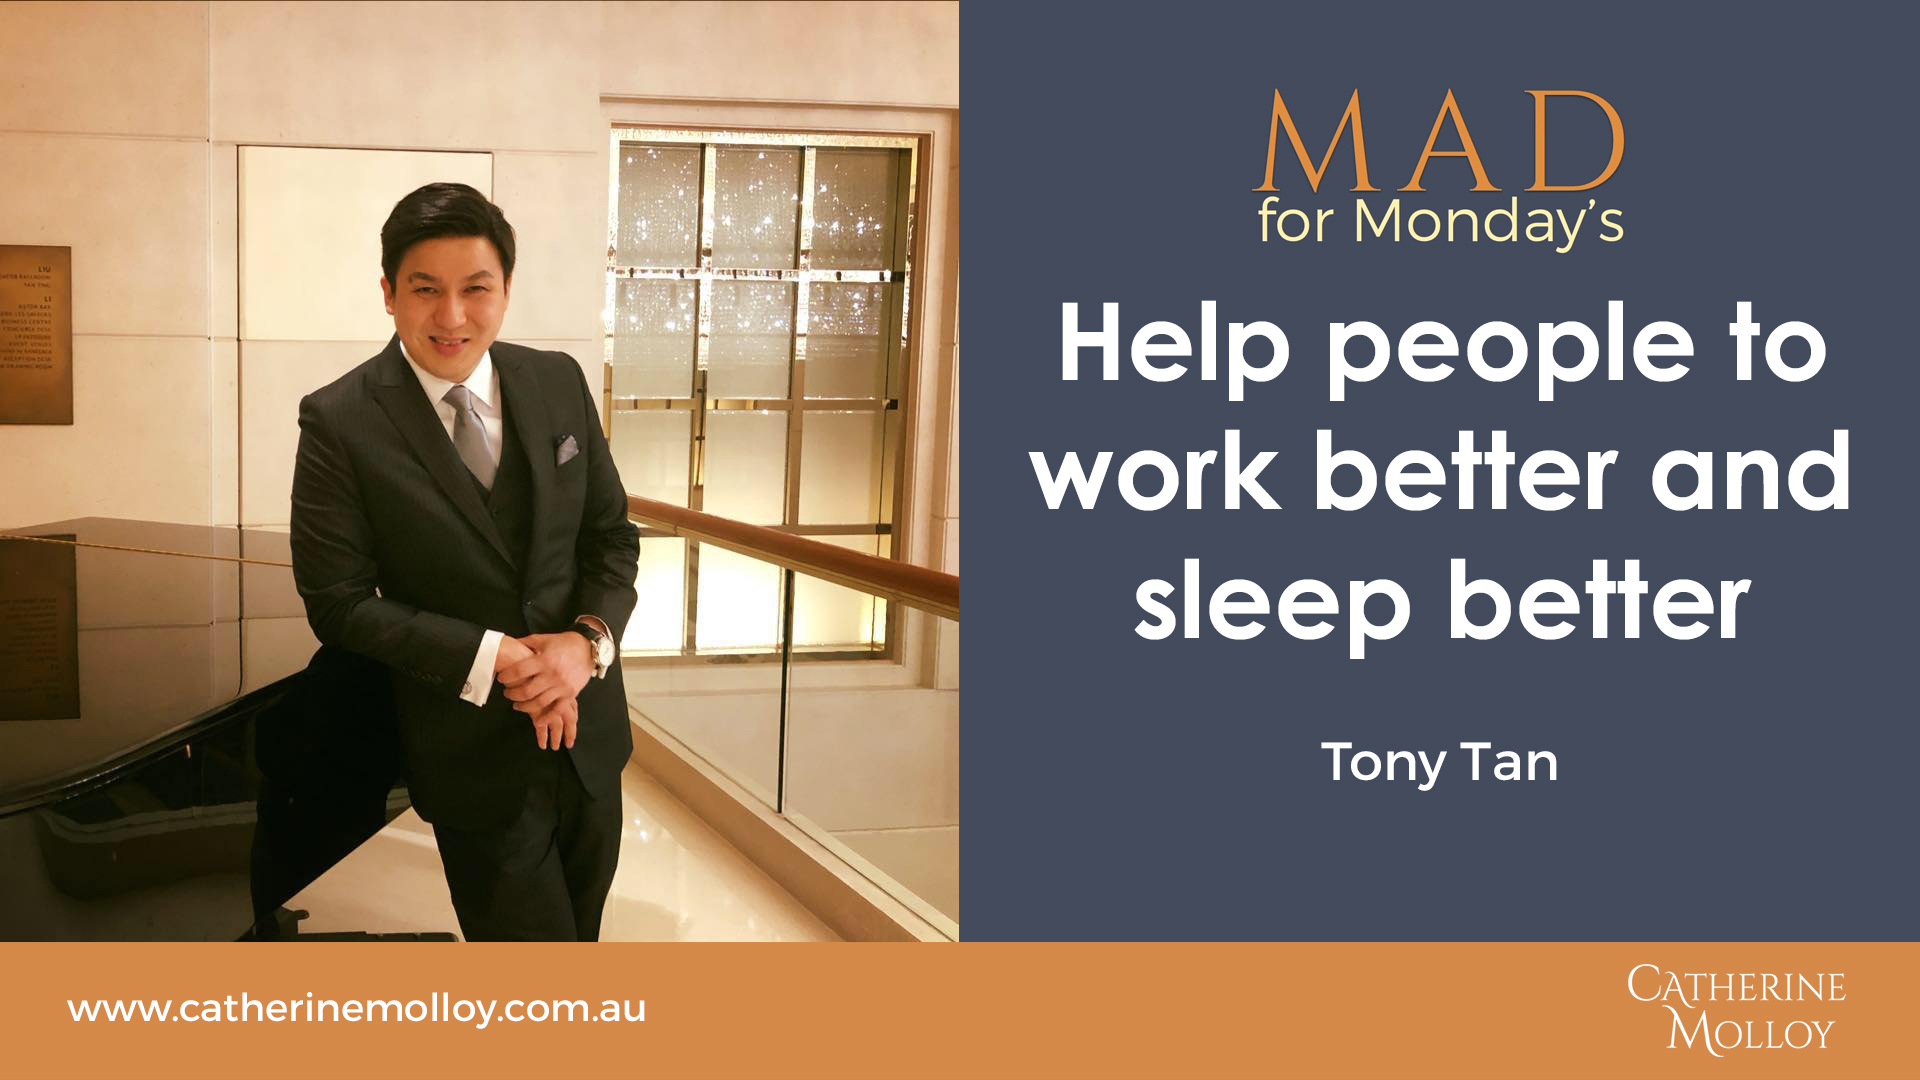 MAD for Monday's – Help people to work better and sleep better